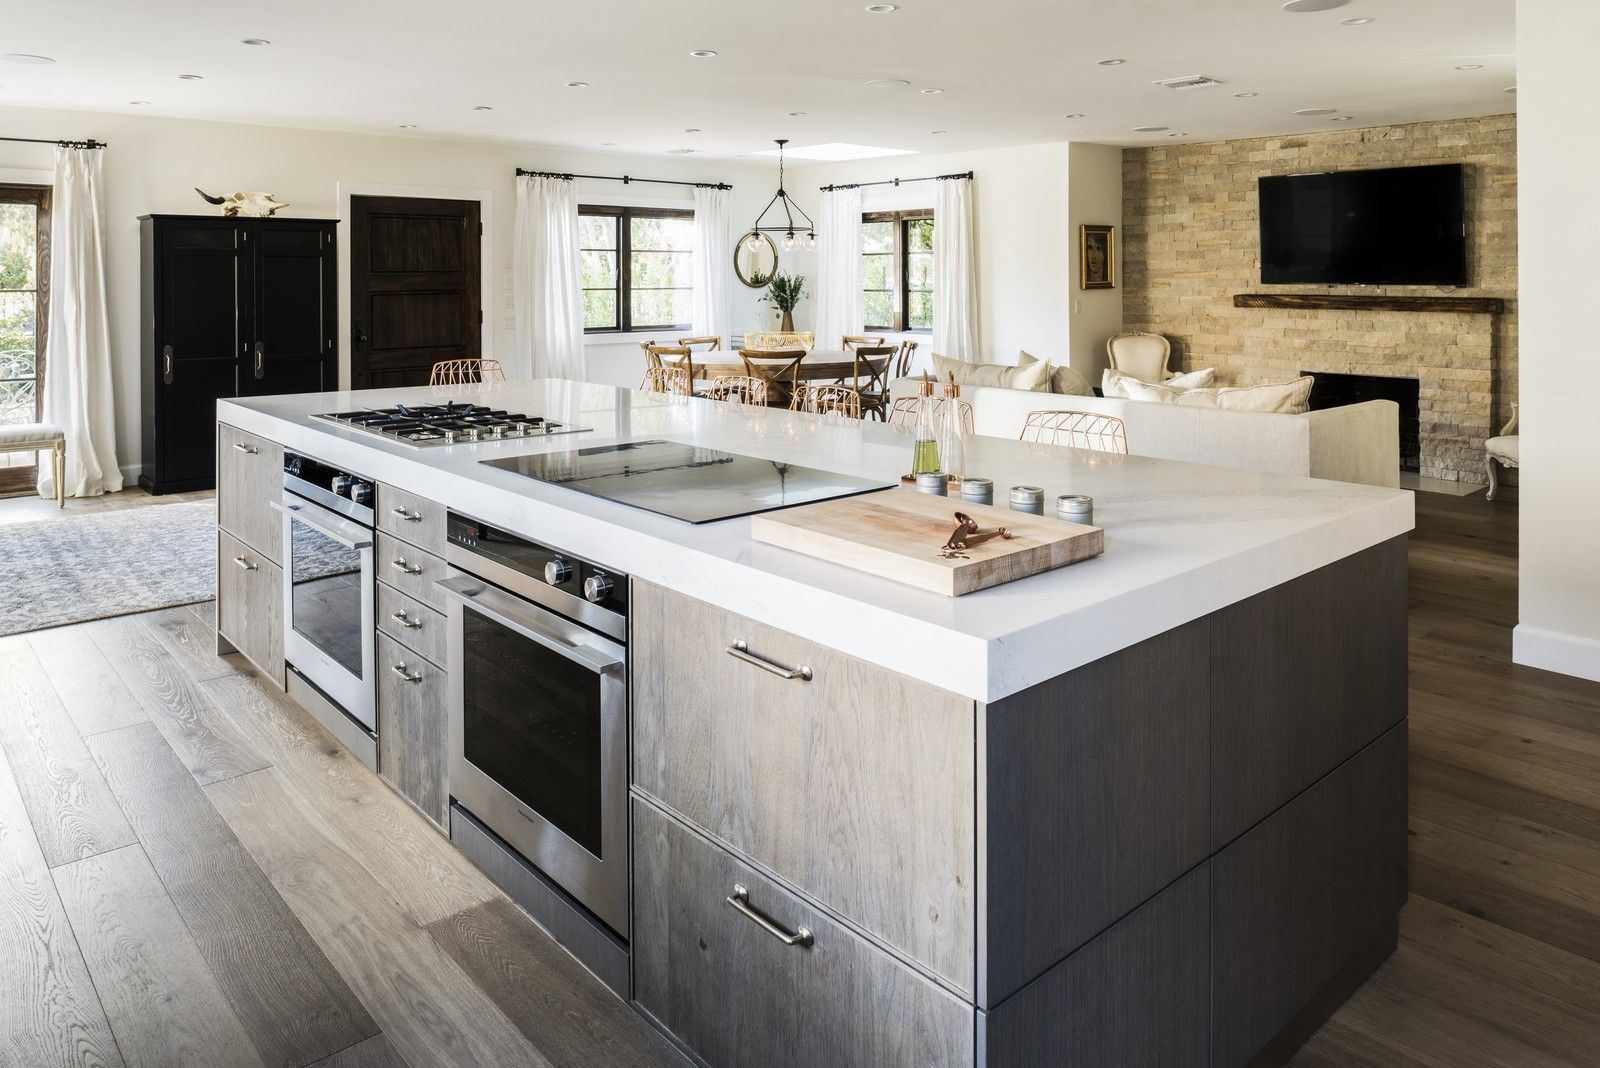 chef ludo lefebvre s modern kitchen with rustic roots in 2020 modern kitchen island kitchen on kitchen island id=65262